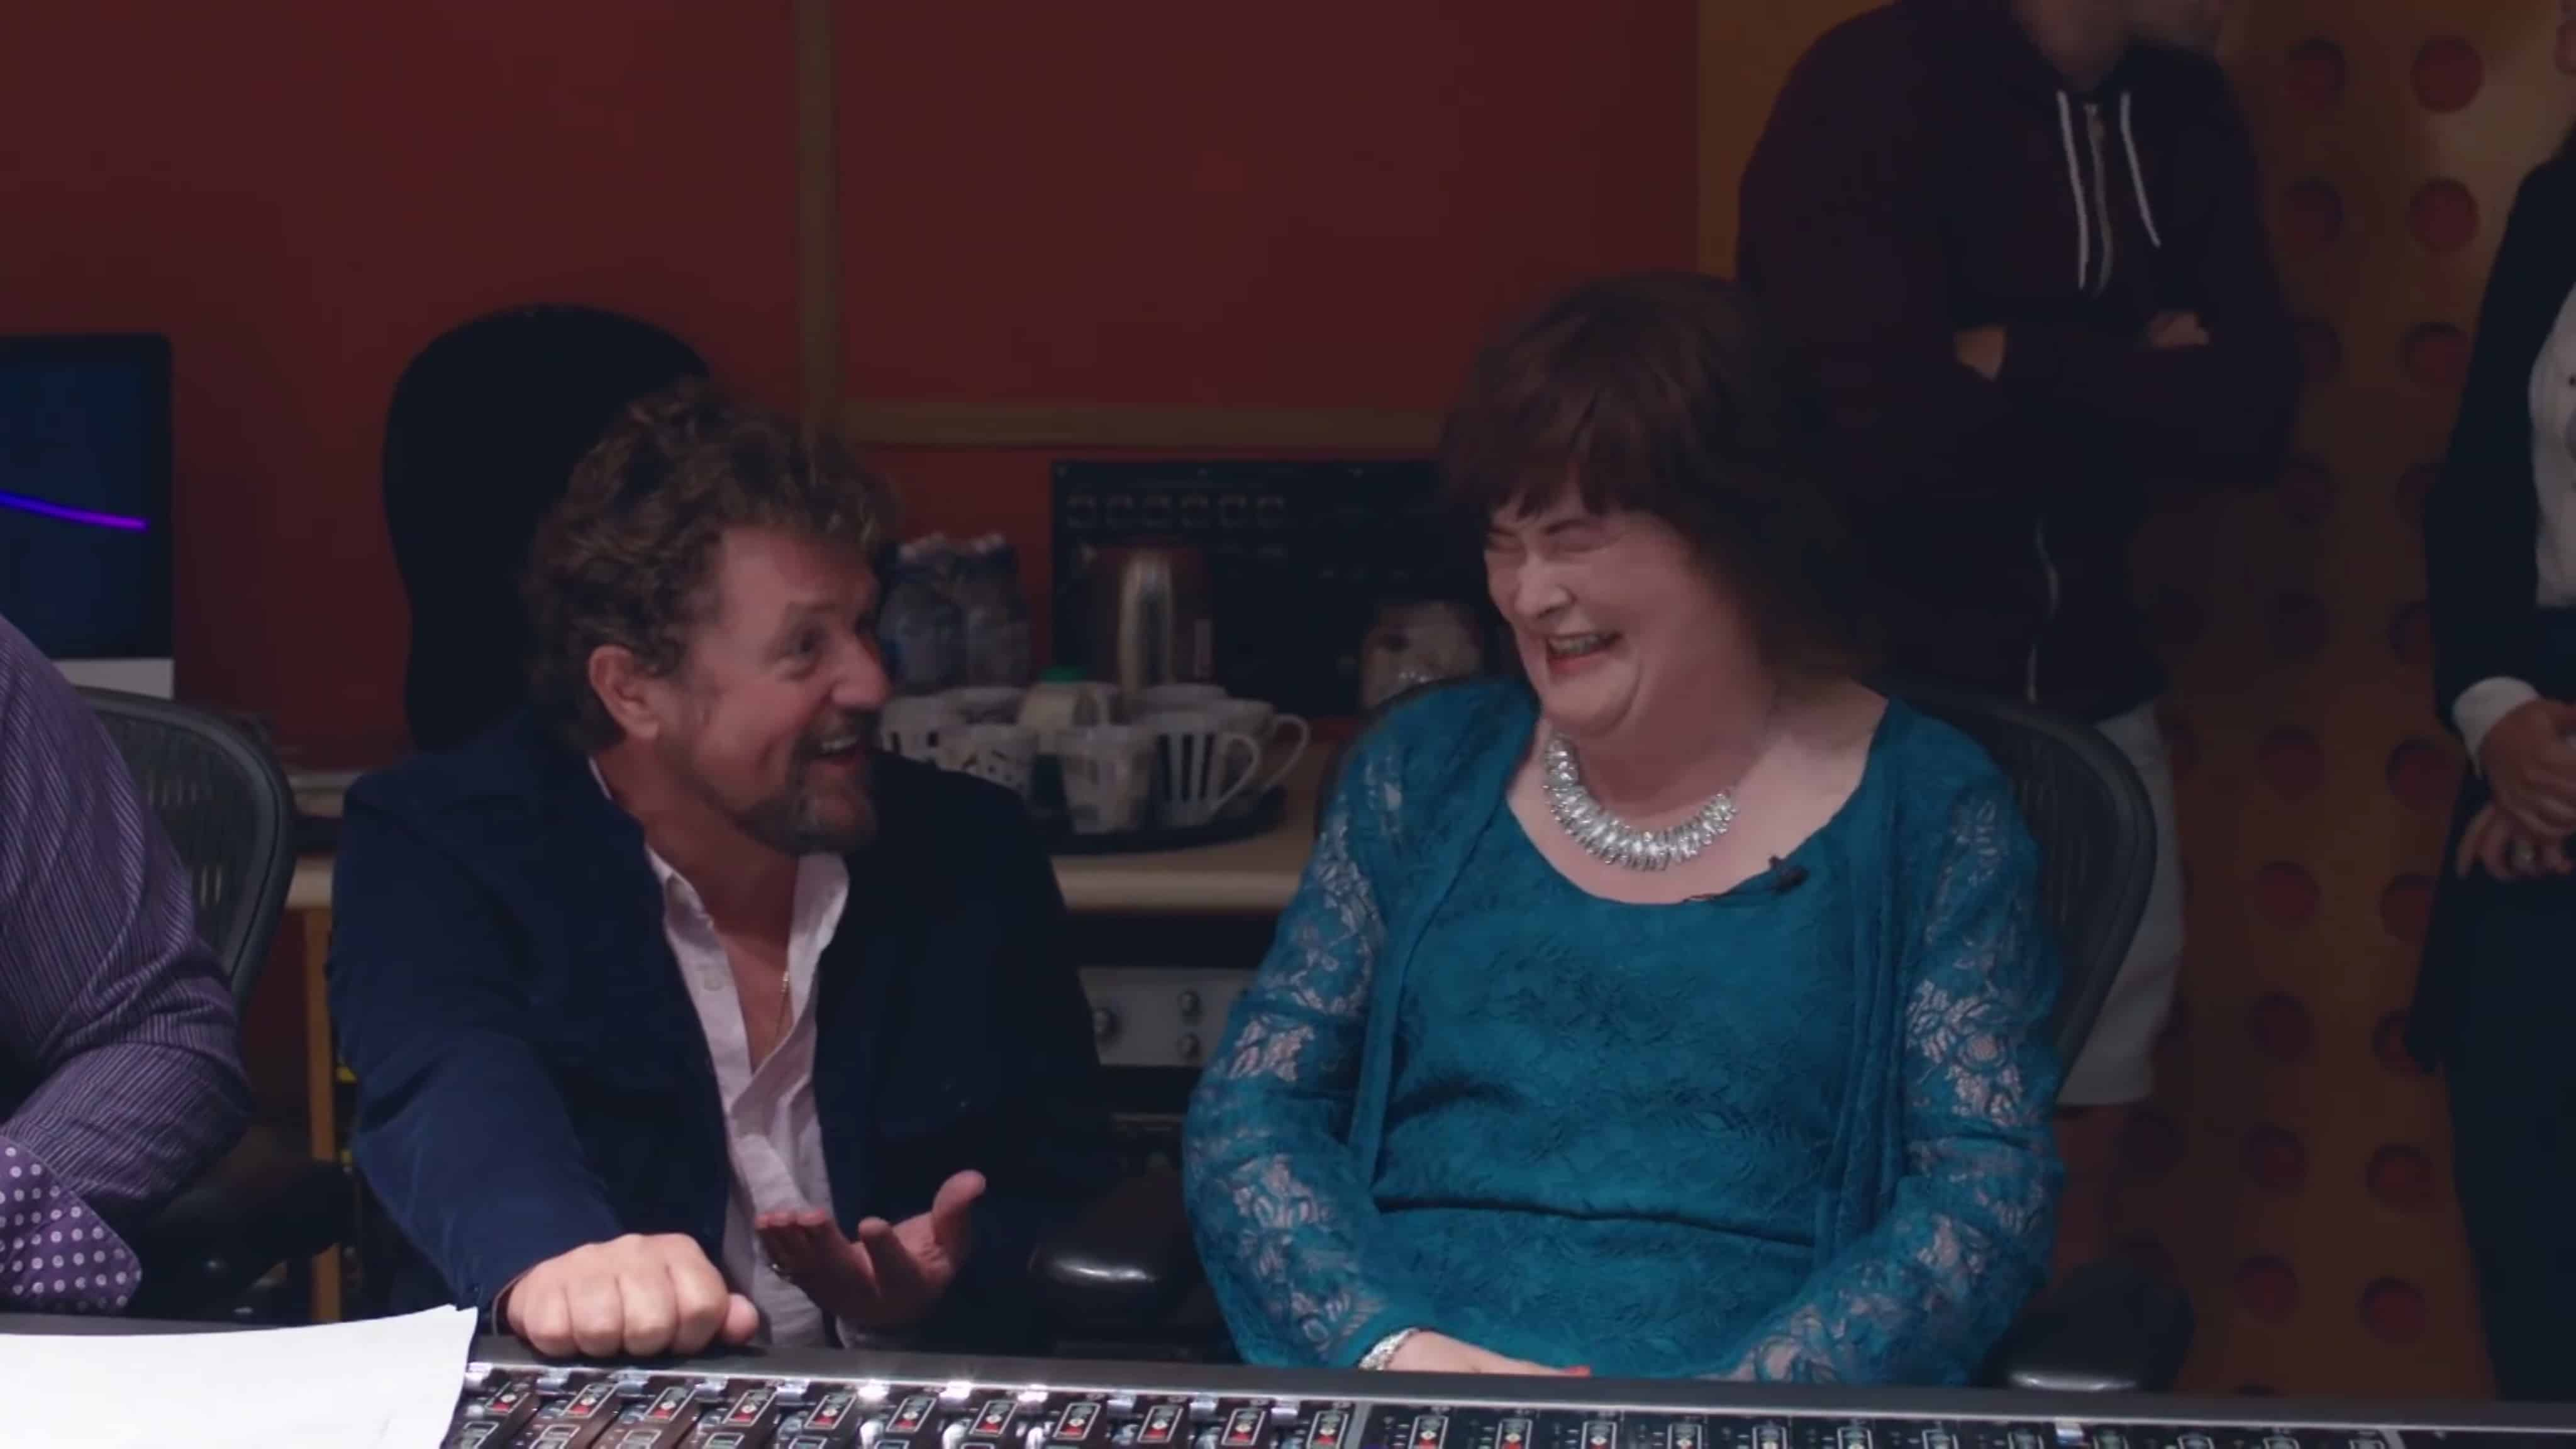 Watch Susan Boyle and Michael Ball duet on 'A Million Dreams' from her new album